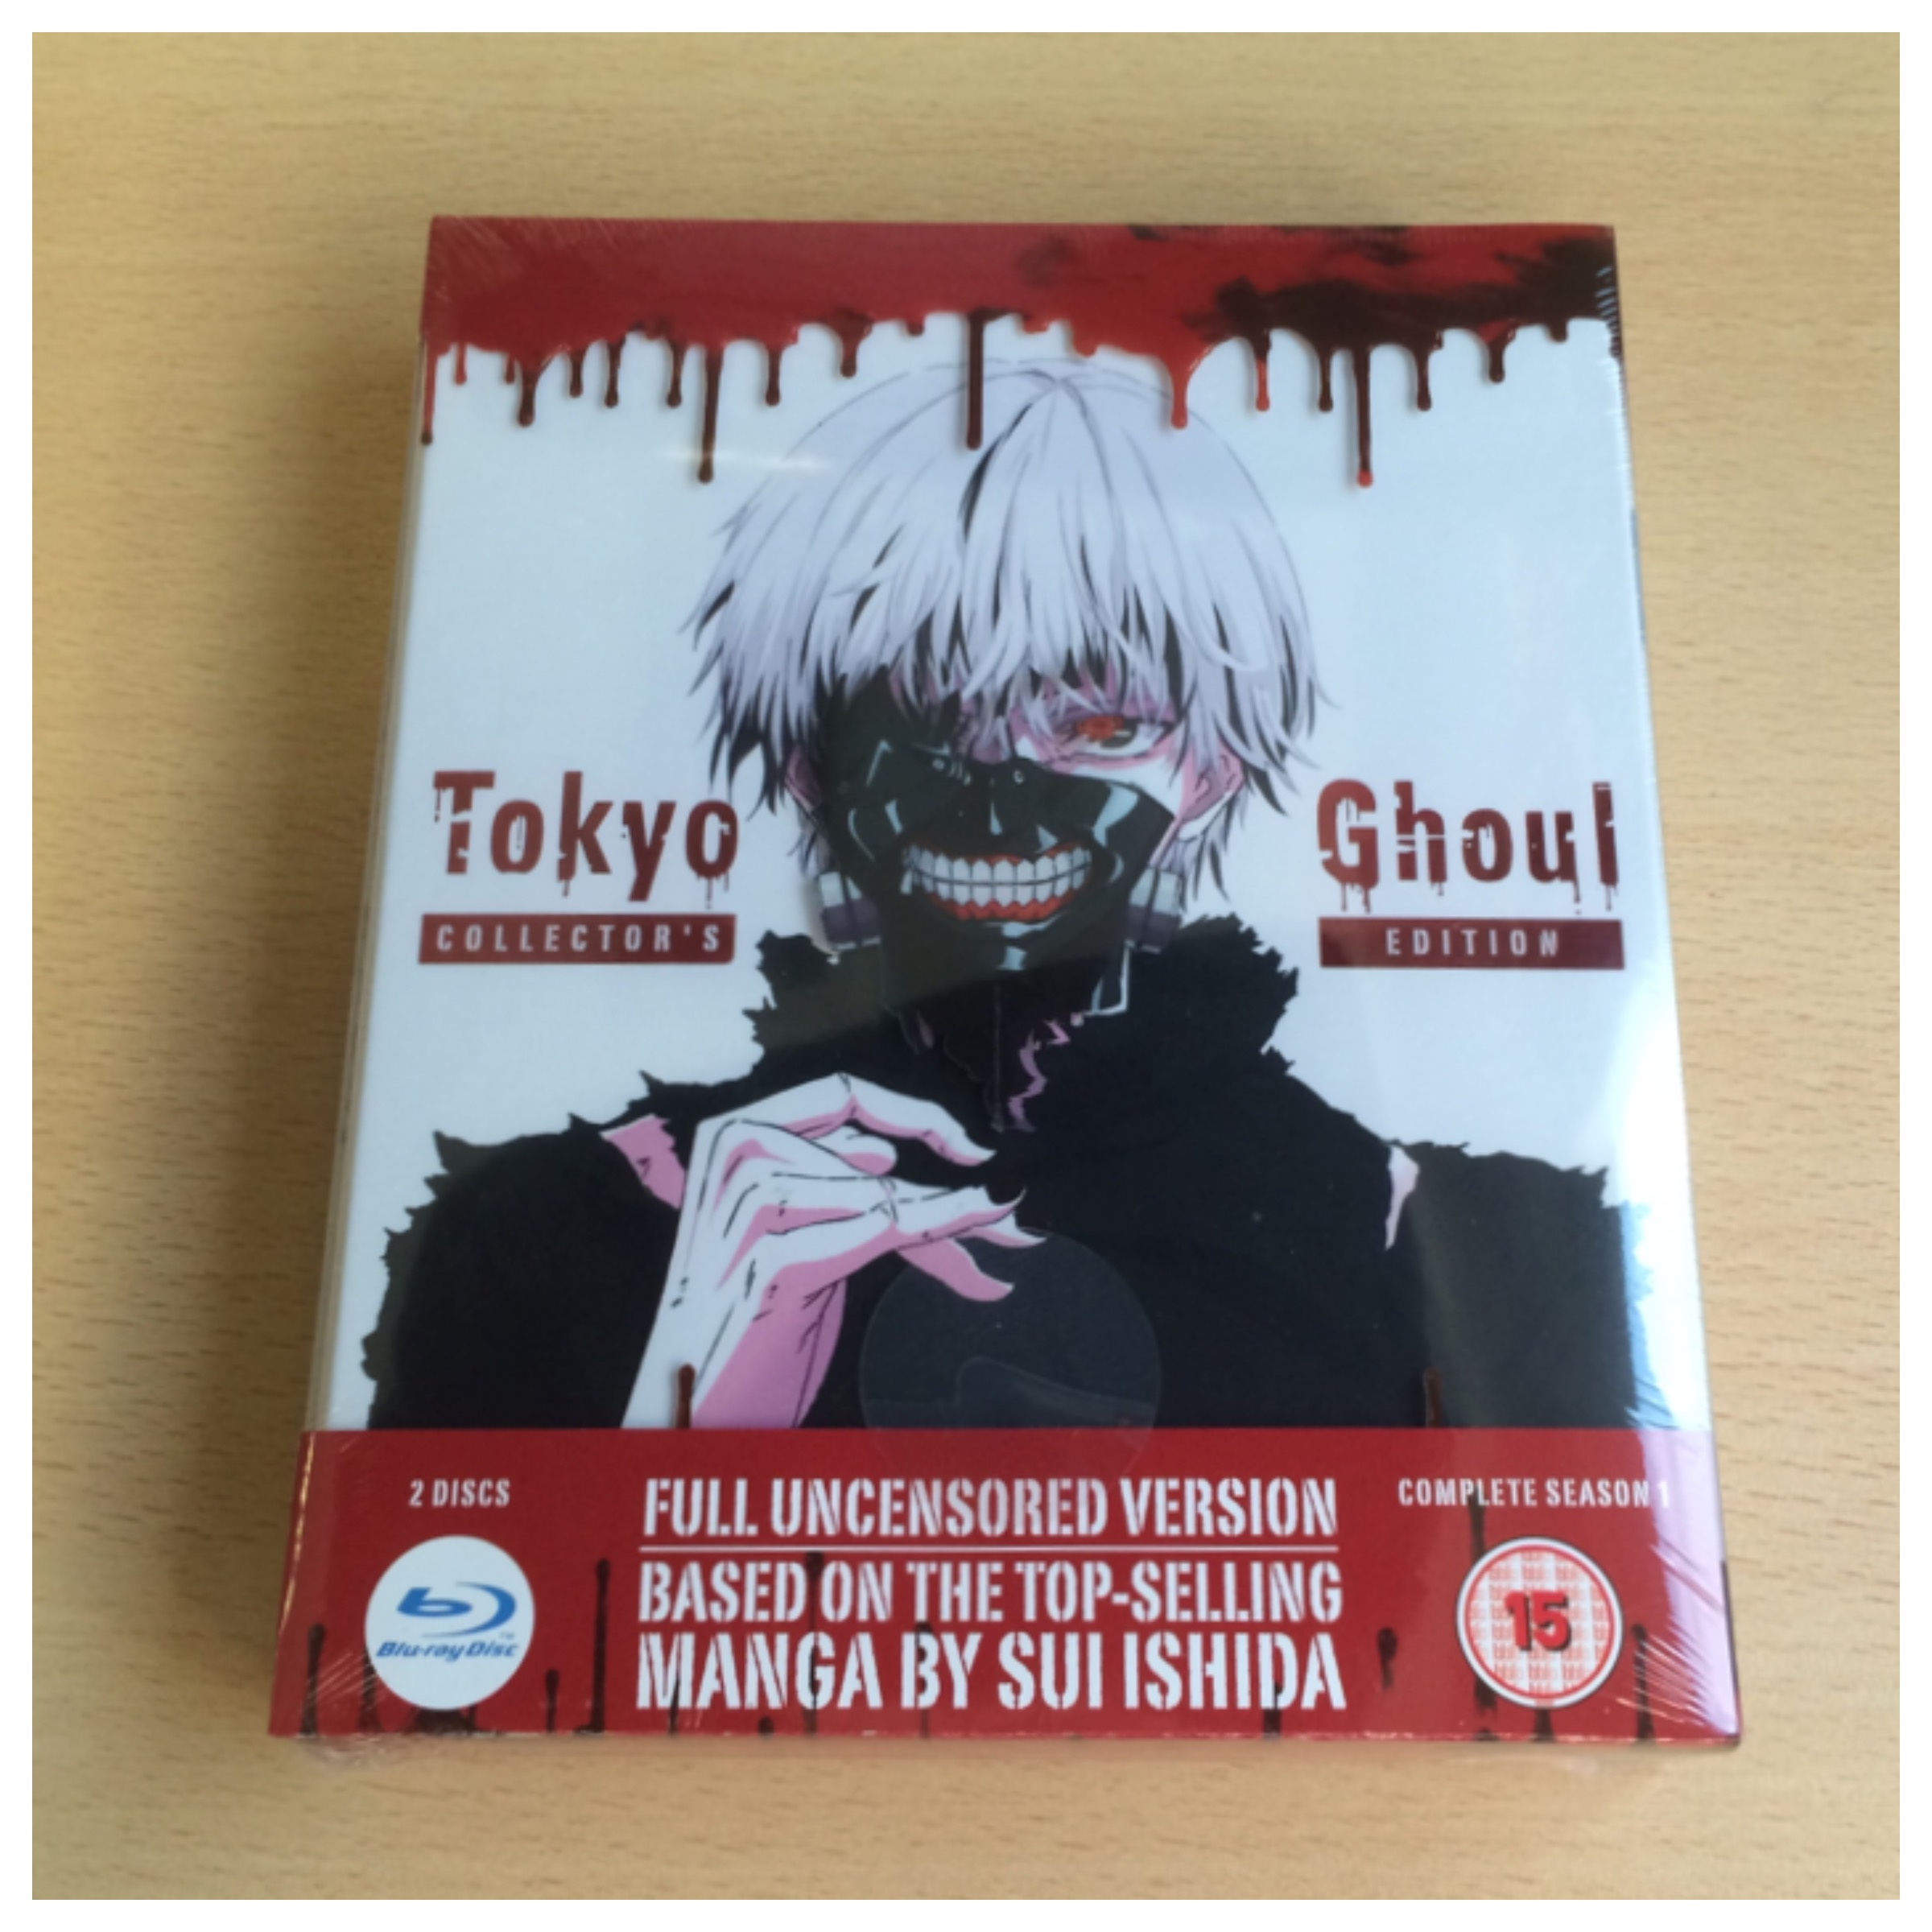 Tokyo Ghoul Limited Edition Blu-ray as you will receive it.